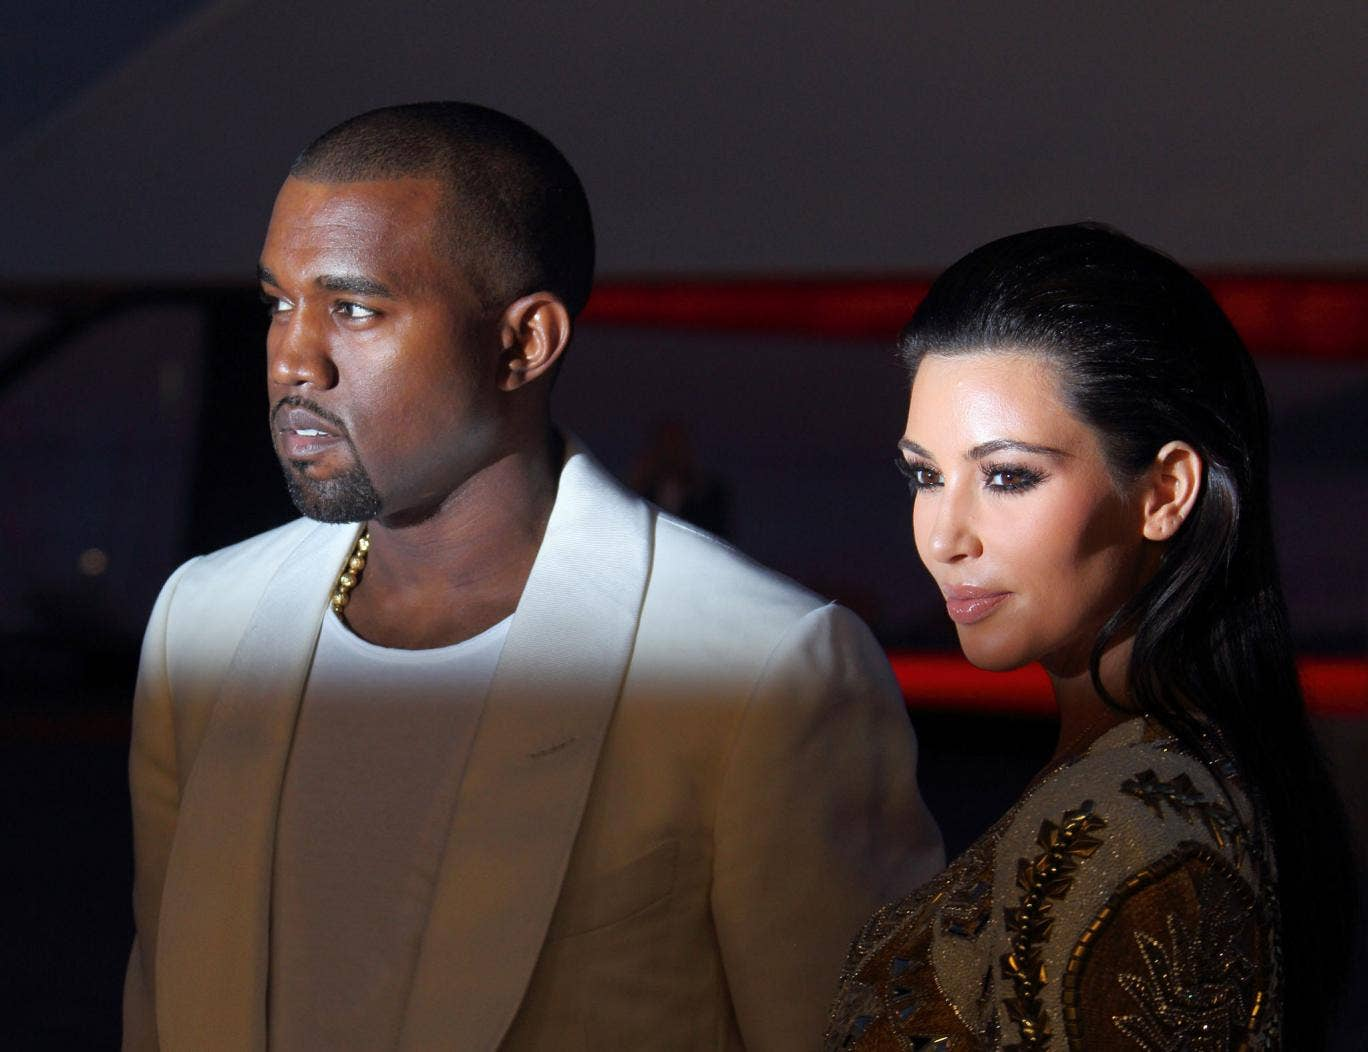 Kanye West's delusional statements of grandeur reached such heights, many believed an entirely fictitious story